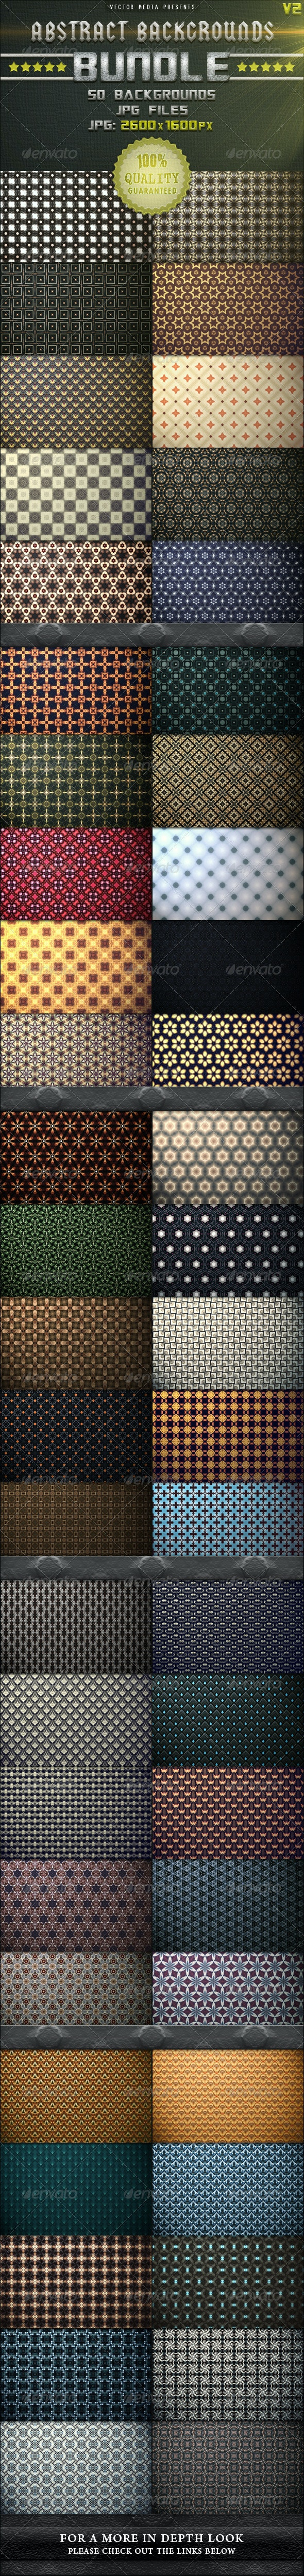 Abstract Backgrounds - Bundle [Vol.2] - Abstract Backgrounds